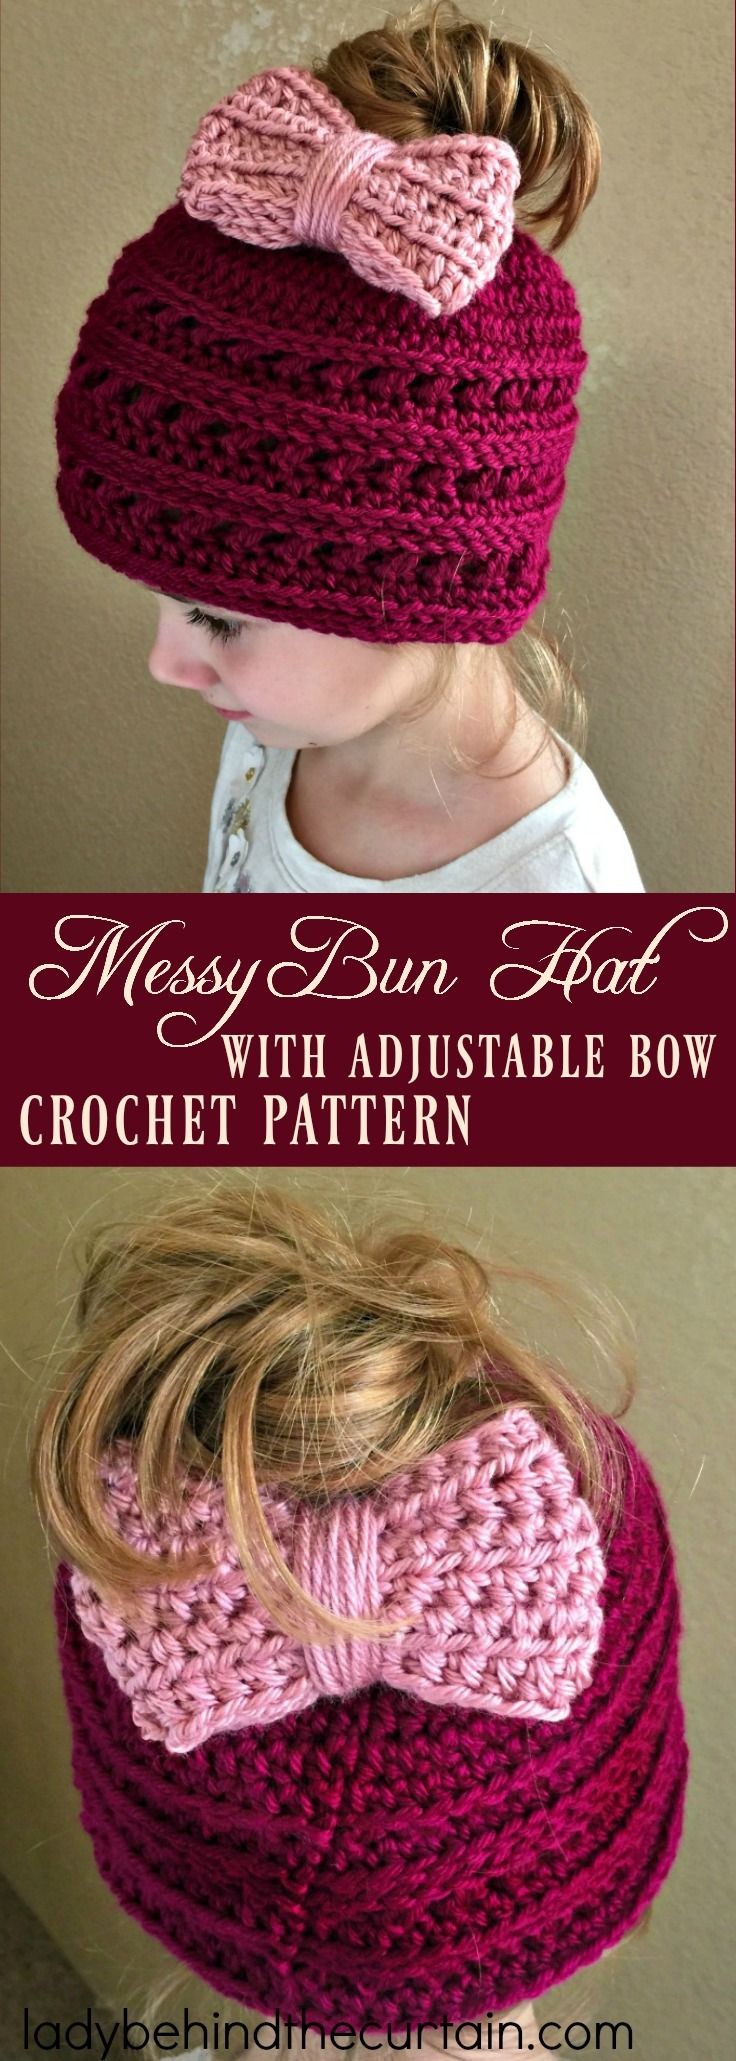 Messy Bun Hat with Adjustable Bow Crochet Pattern | easy crochet pattern, winter hat, messy bun fun